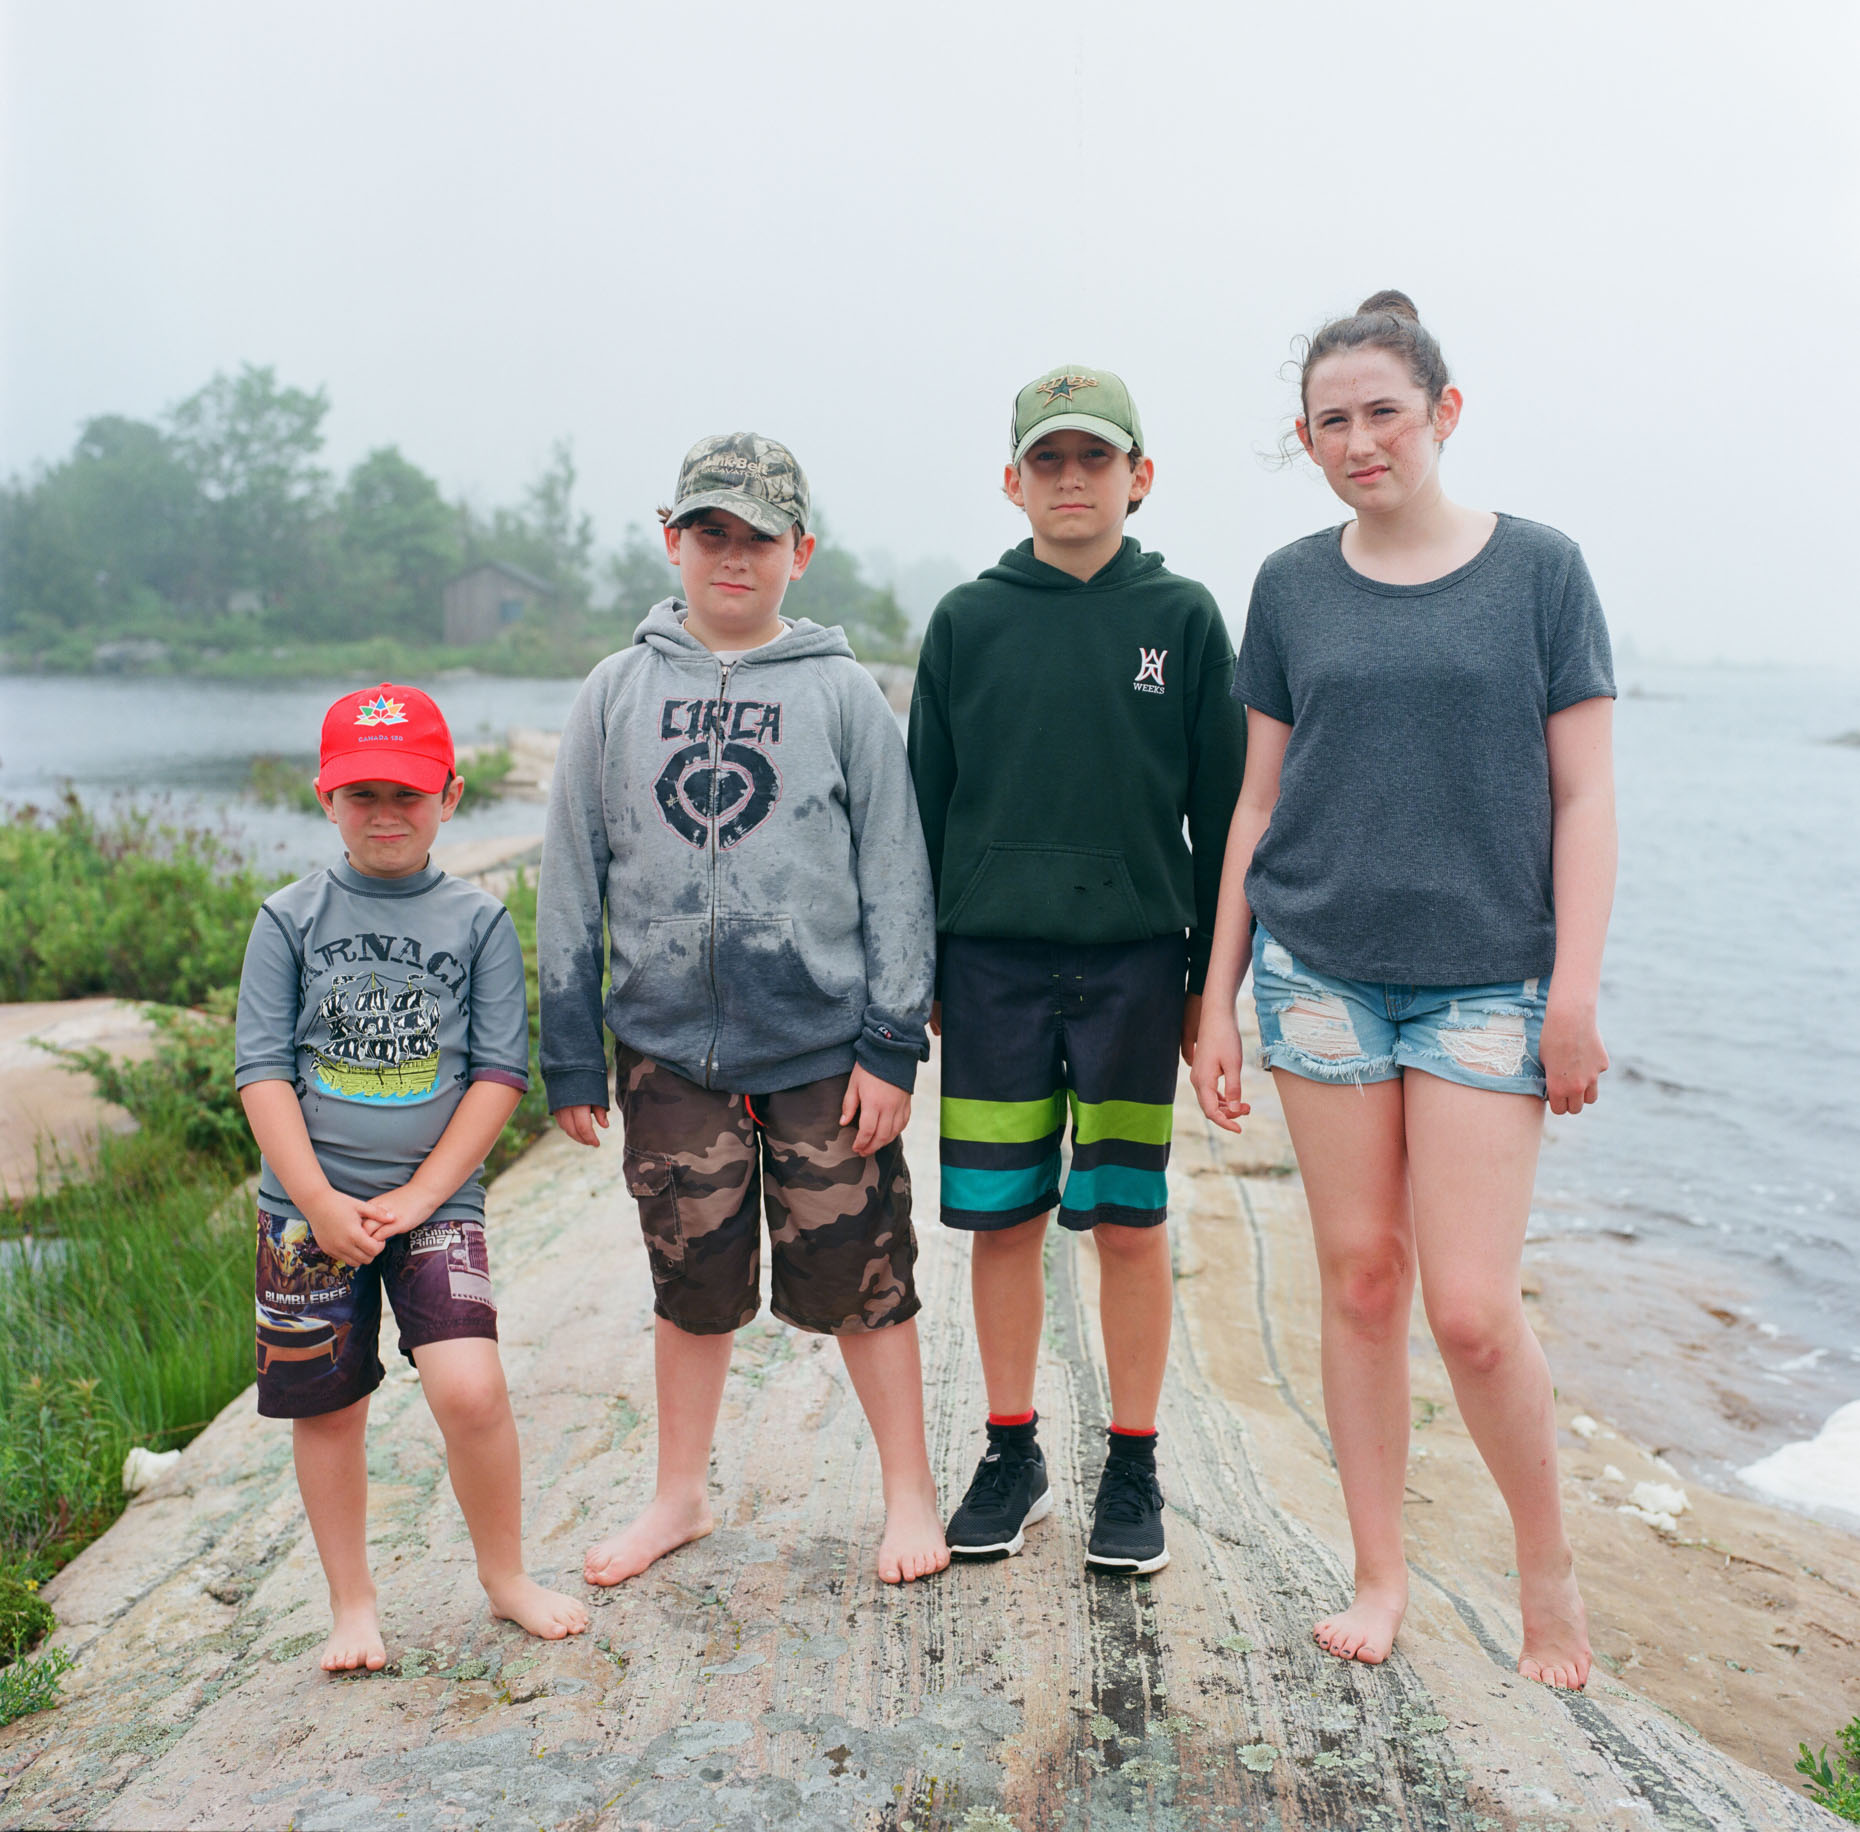 A family of children pose for their portrait on a overcast day in Georgia Lake, Canada